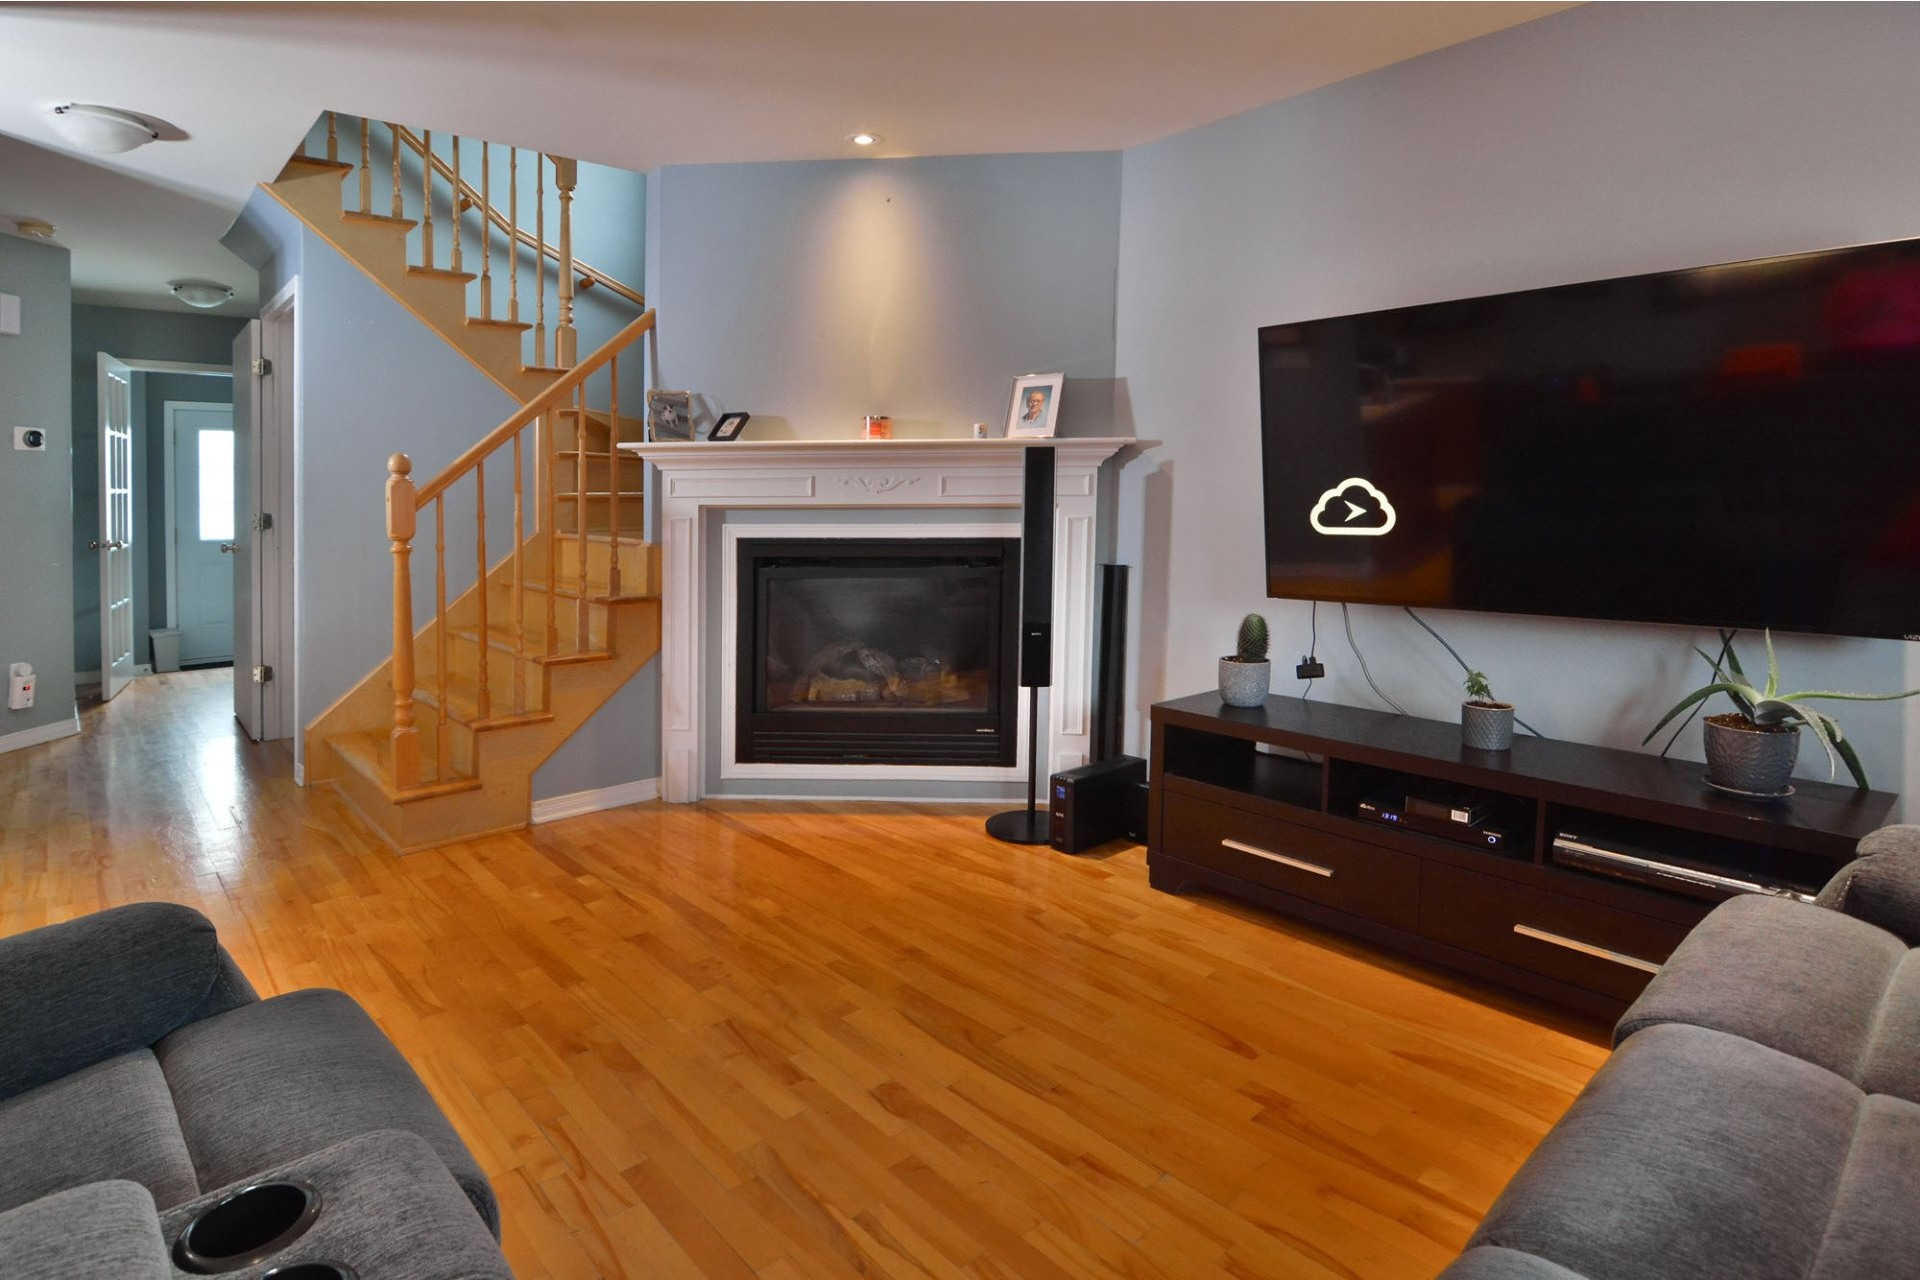 image 6 - House For sale Vaudreuil-Dorion - 13 rooms